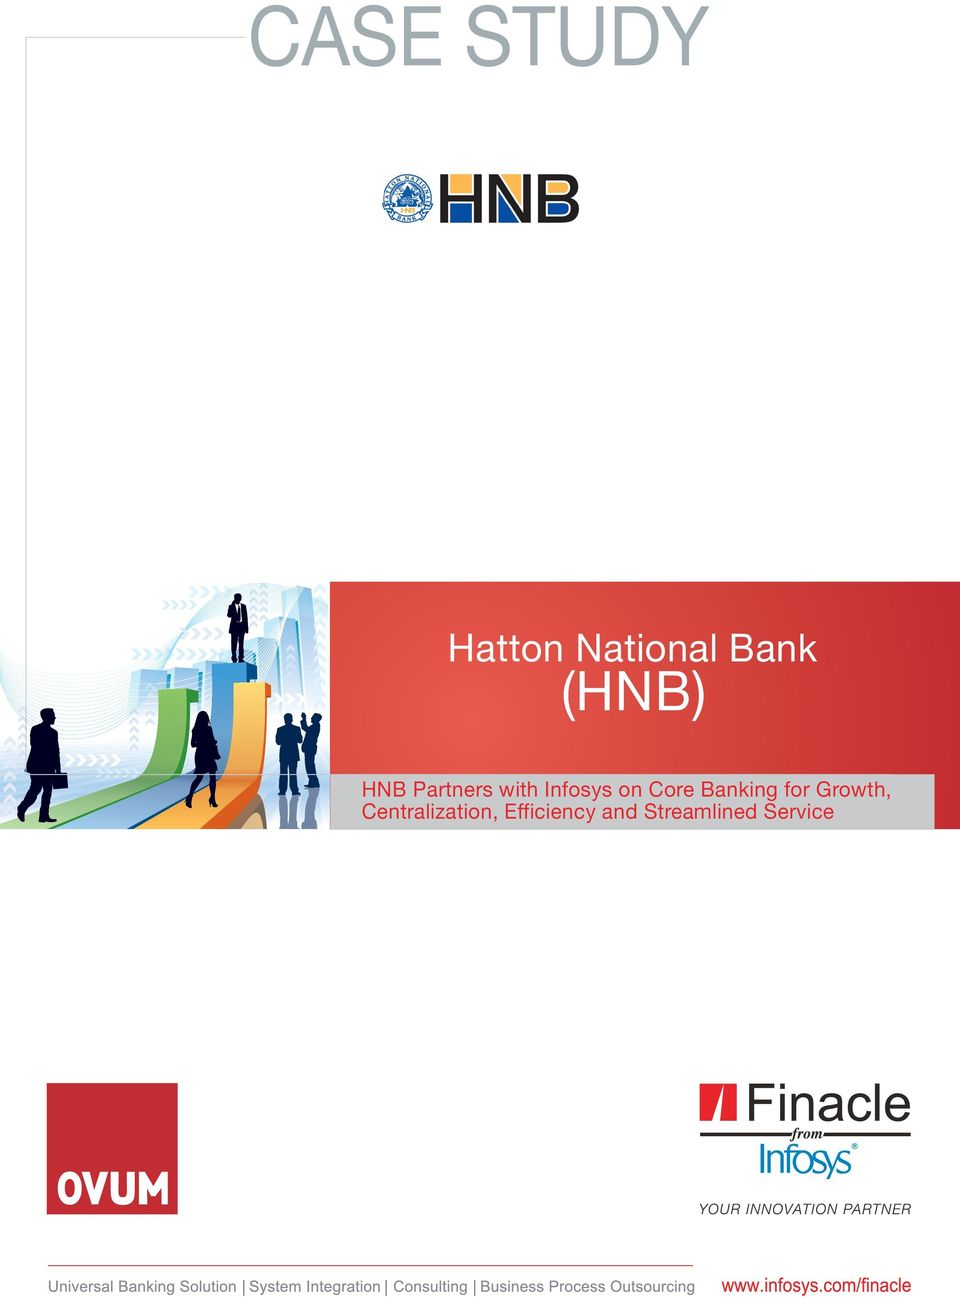 Hatton National Bank (HNB) HNB Partners with Infosys on Core Banking